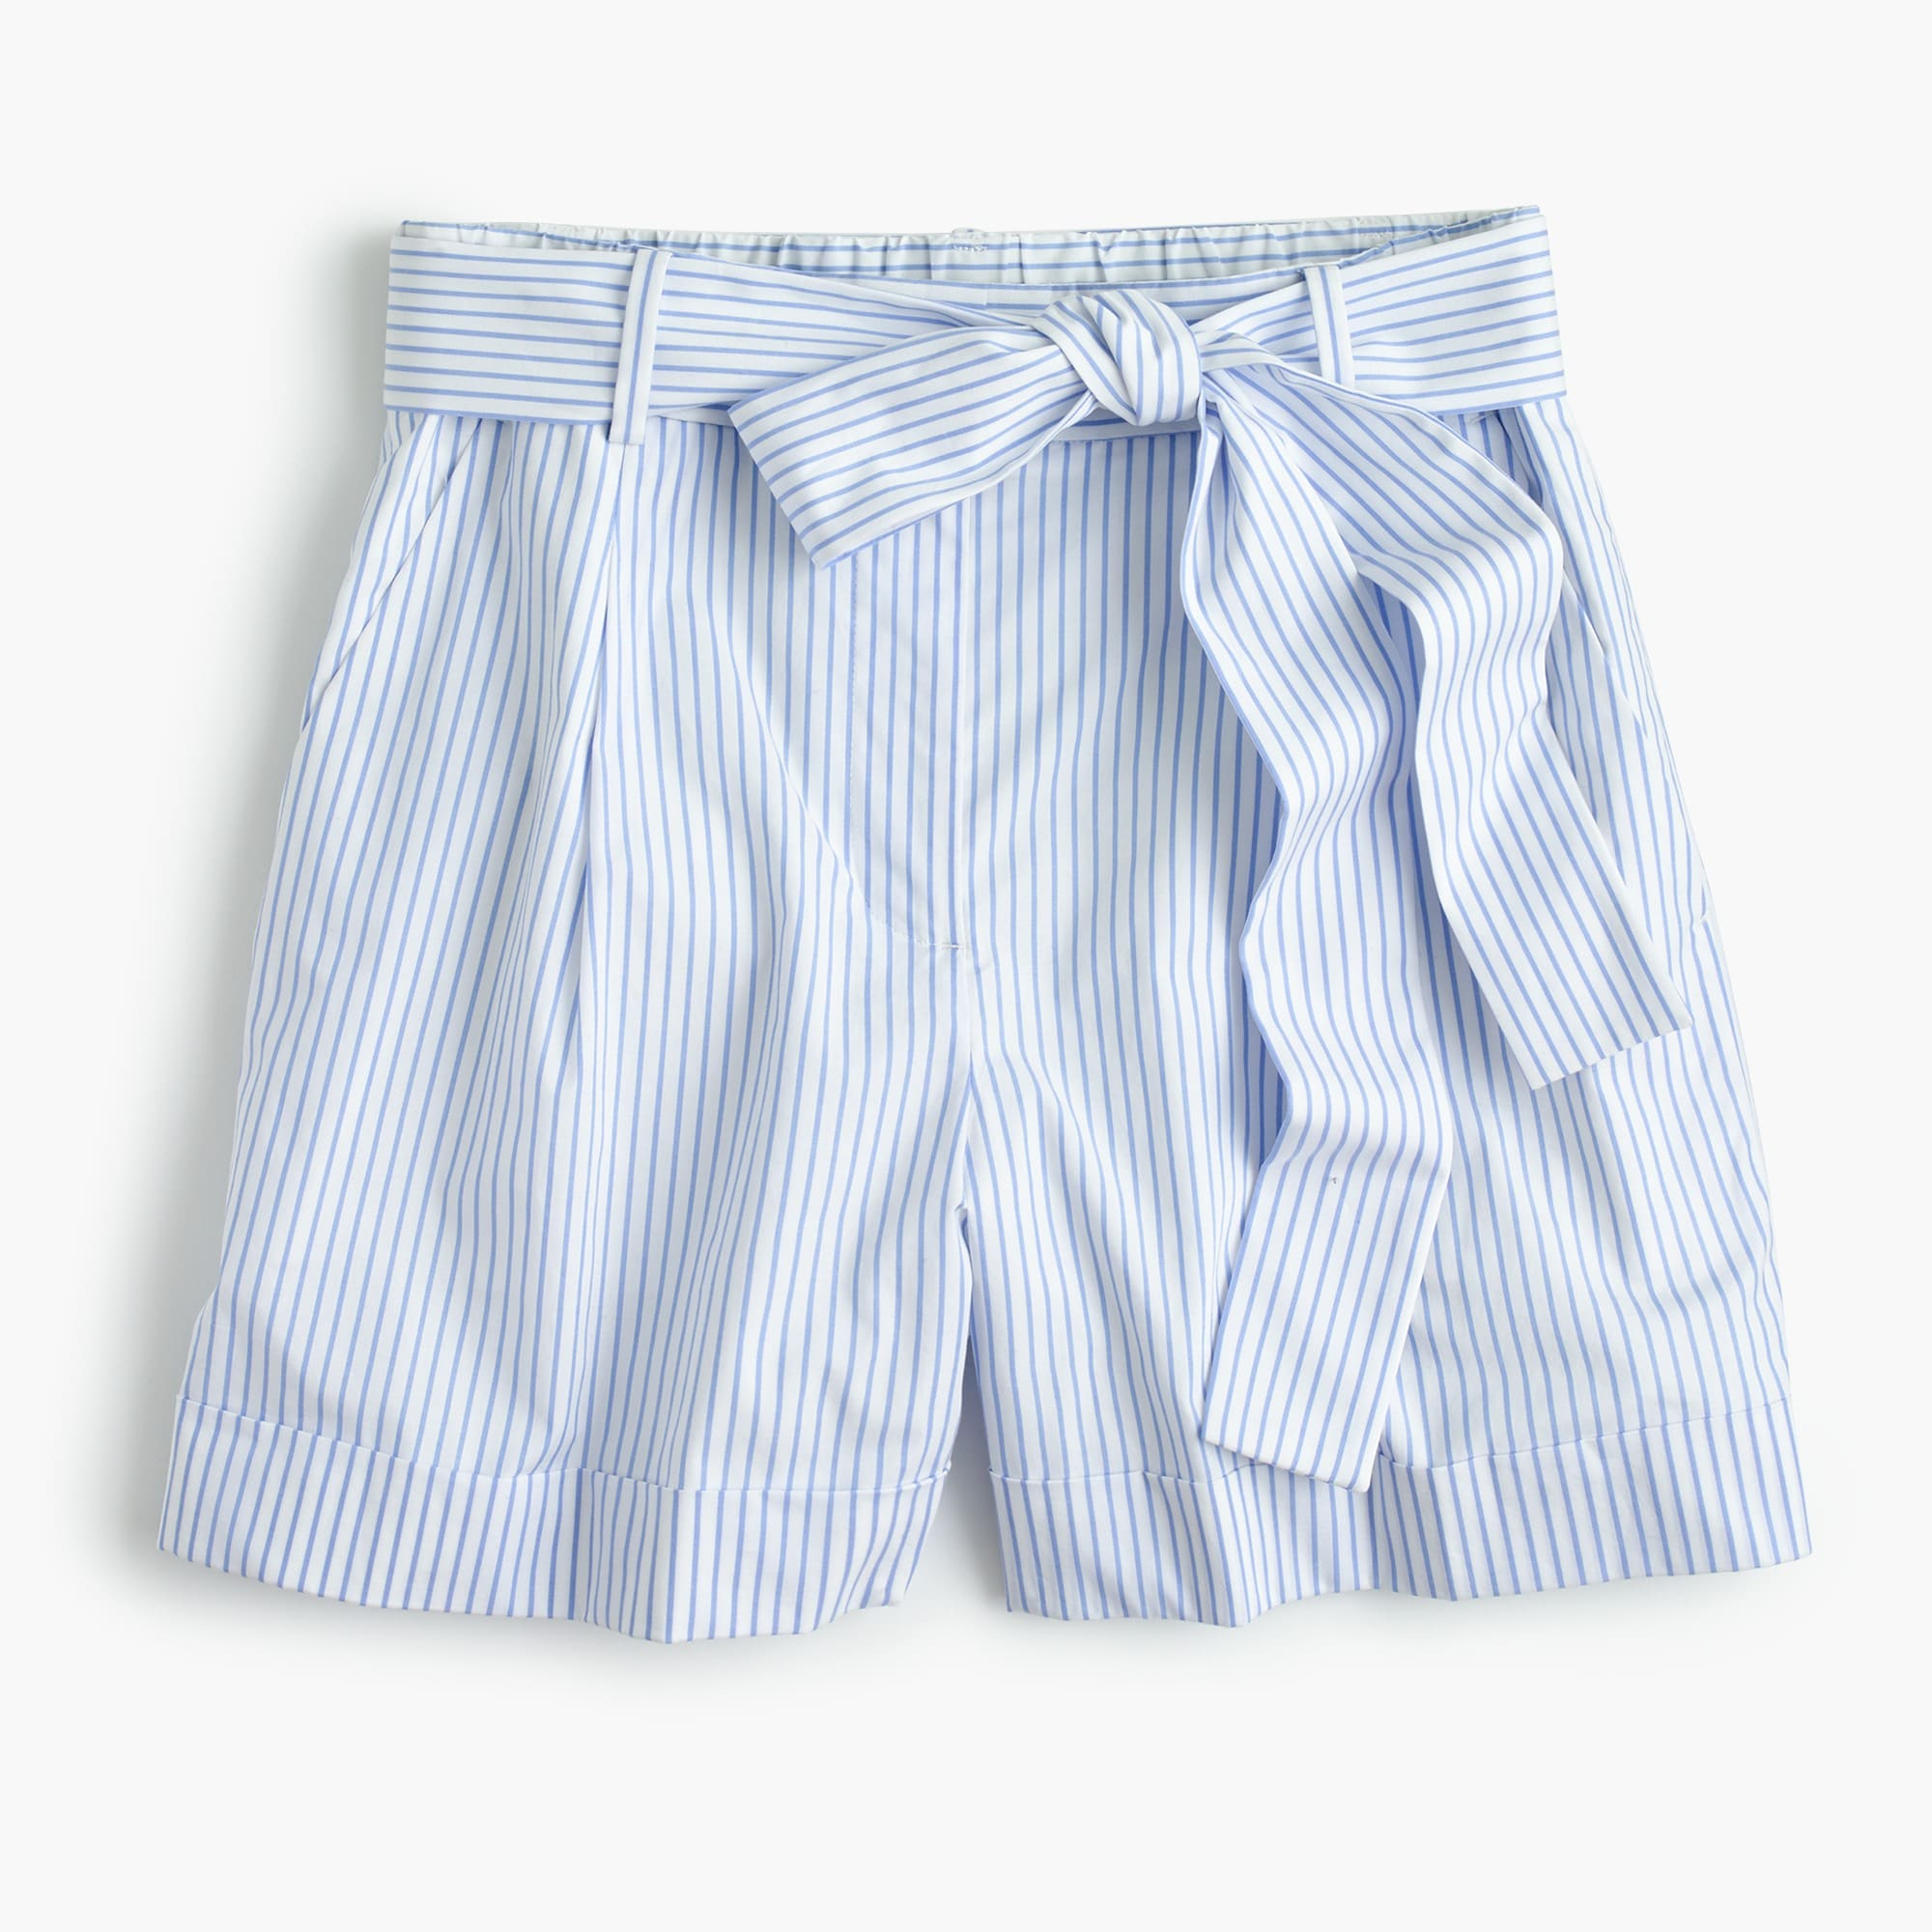 Image 2 for Tie-waist short in shirting stripe